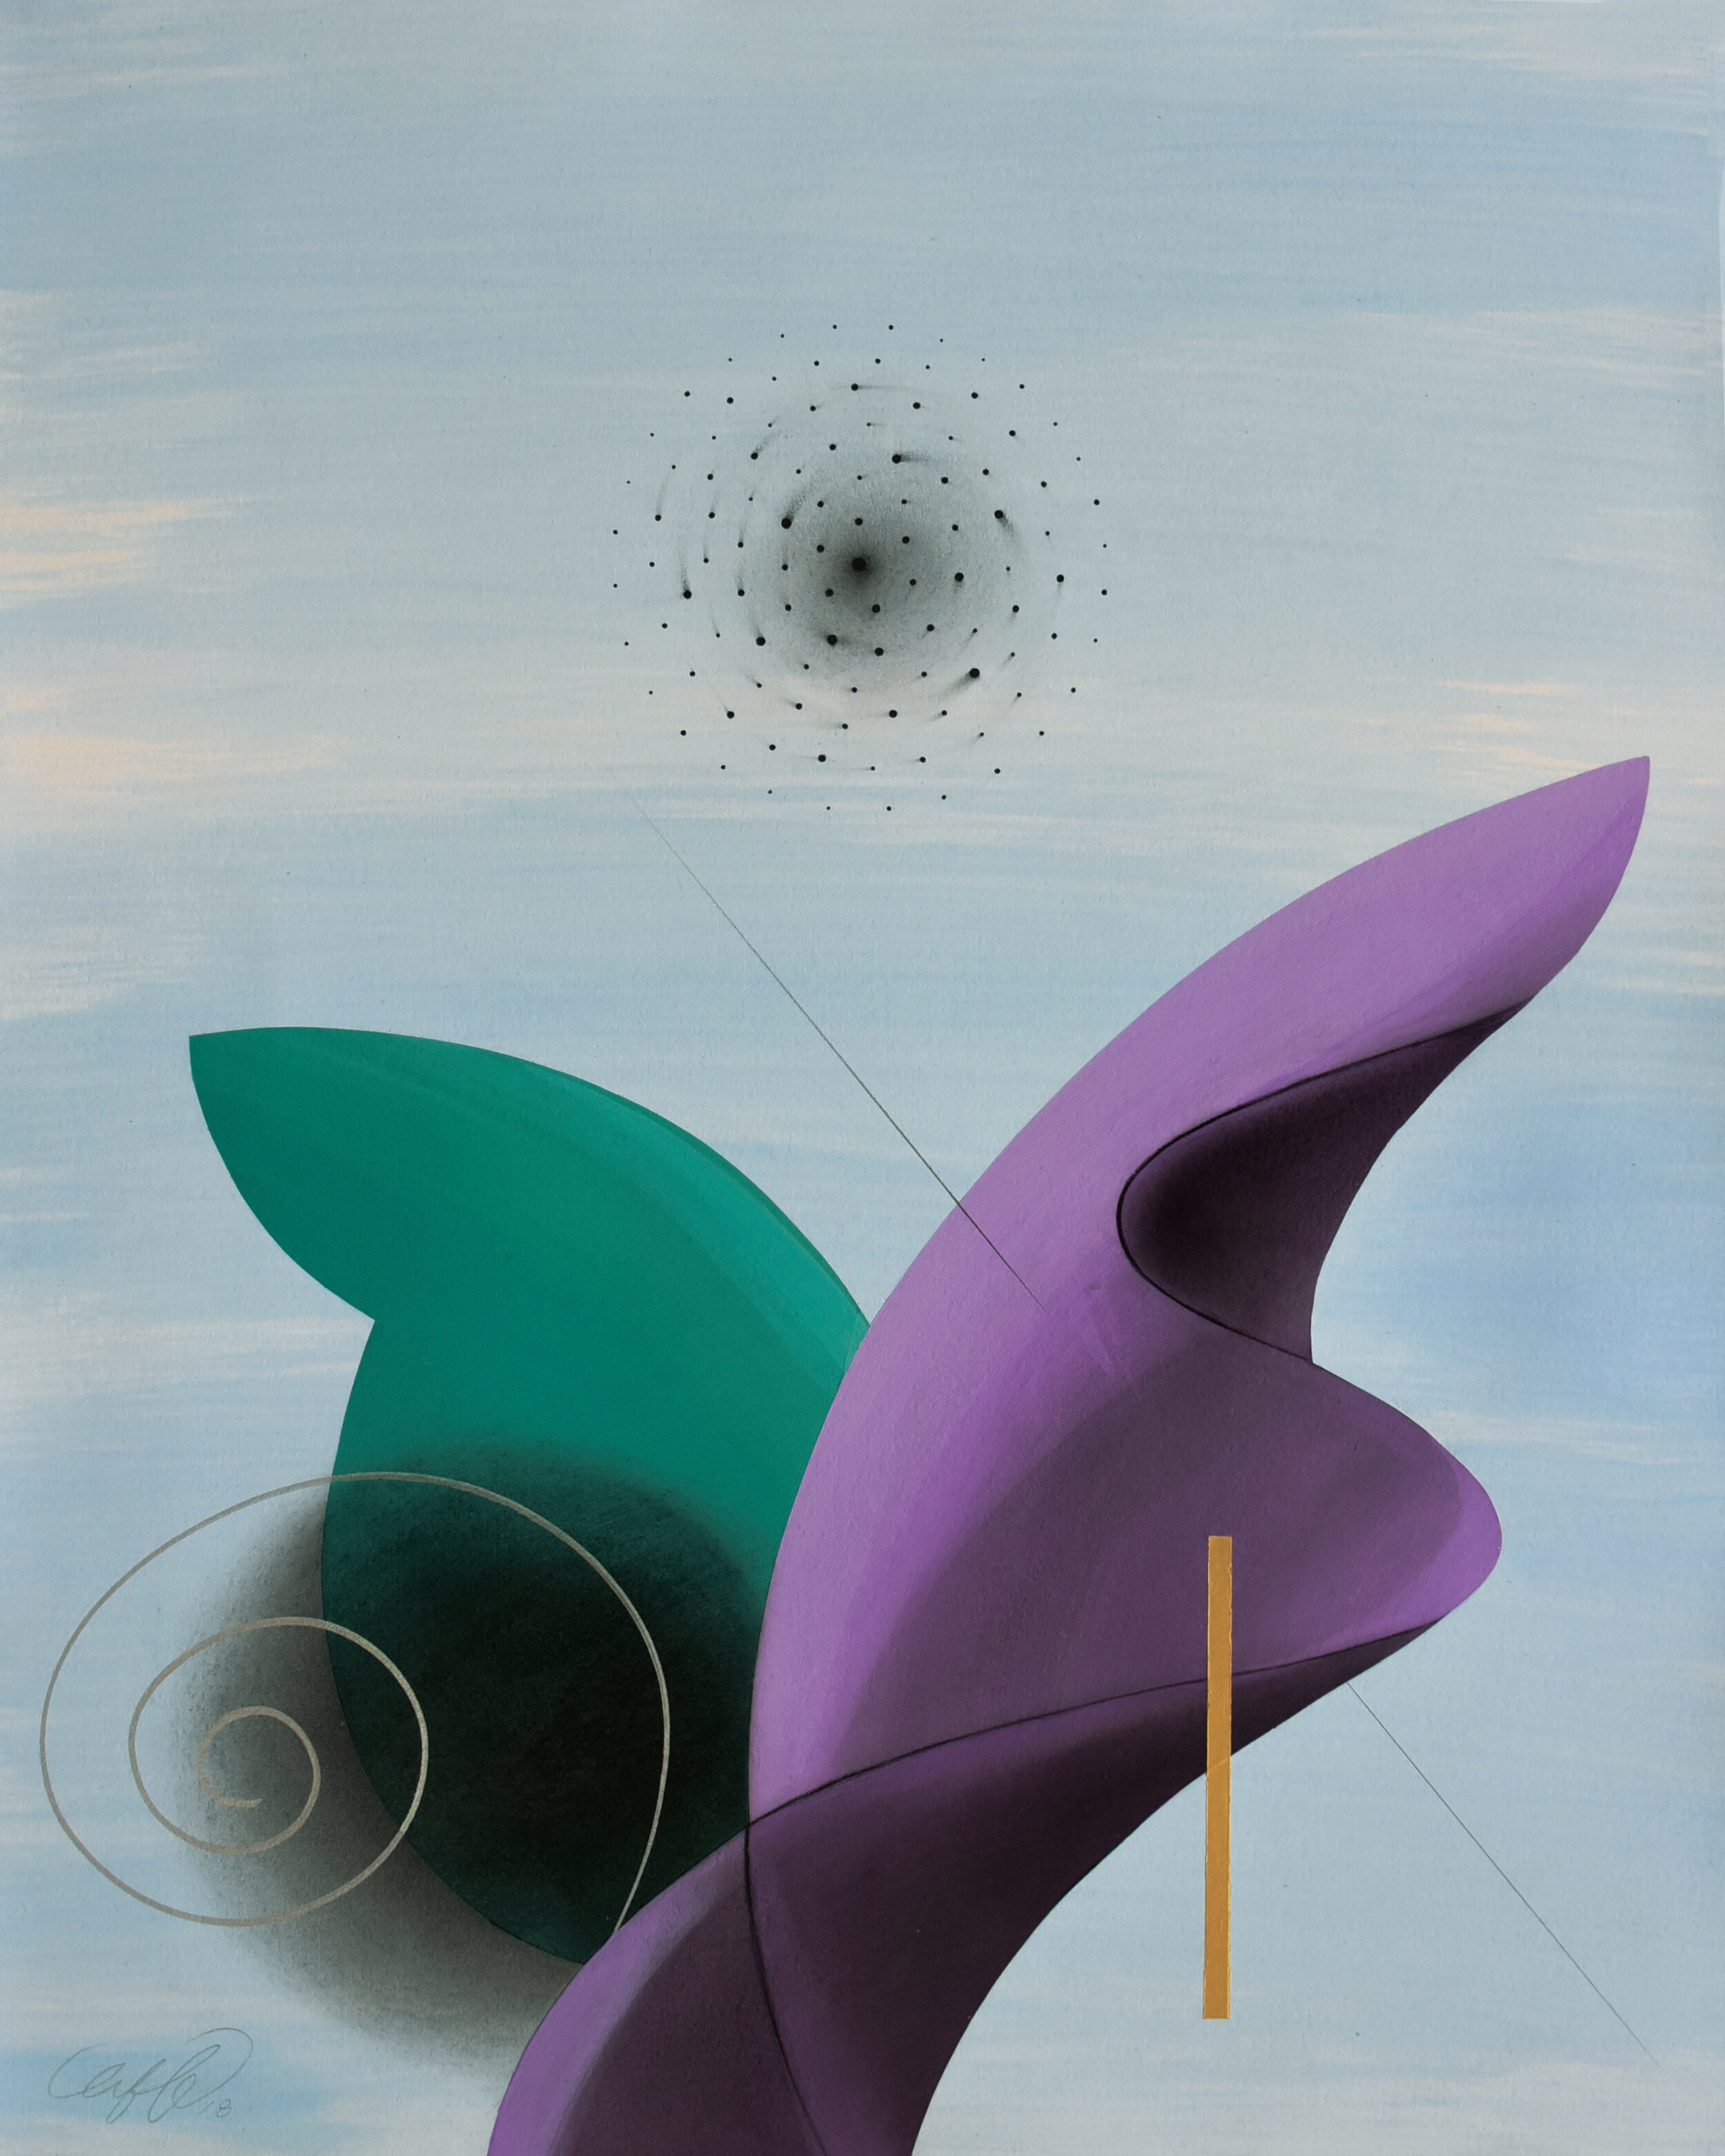 Abstract painting with simplified organic shapes in green, purple and black on gray background.